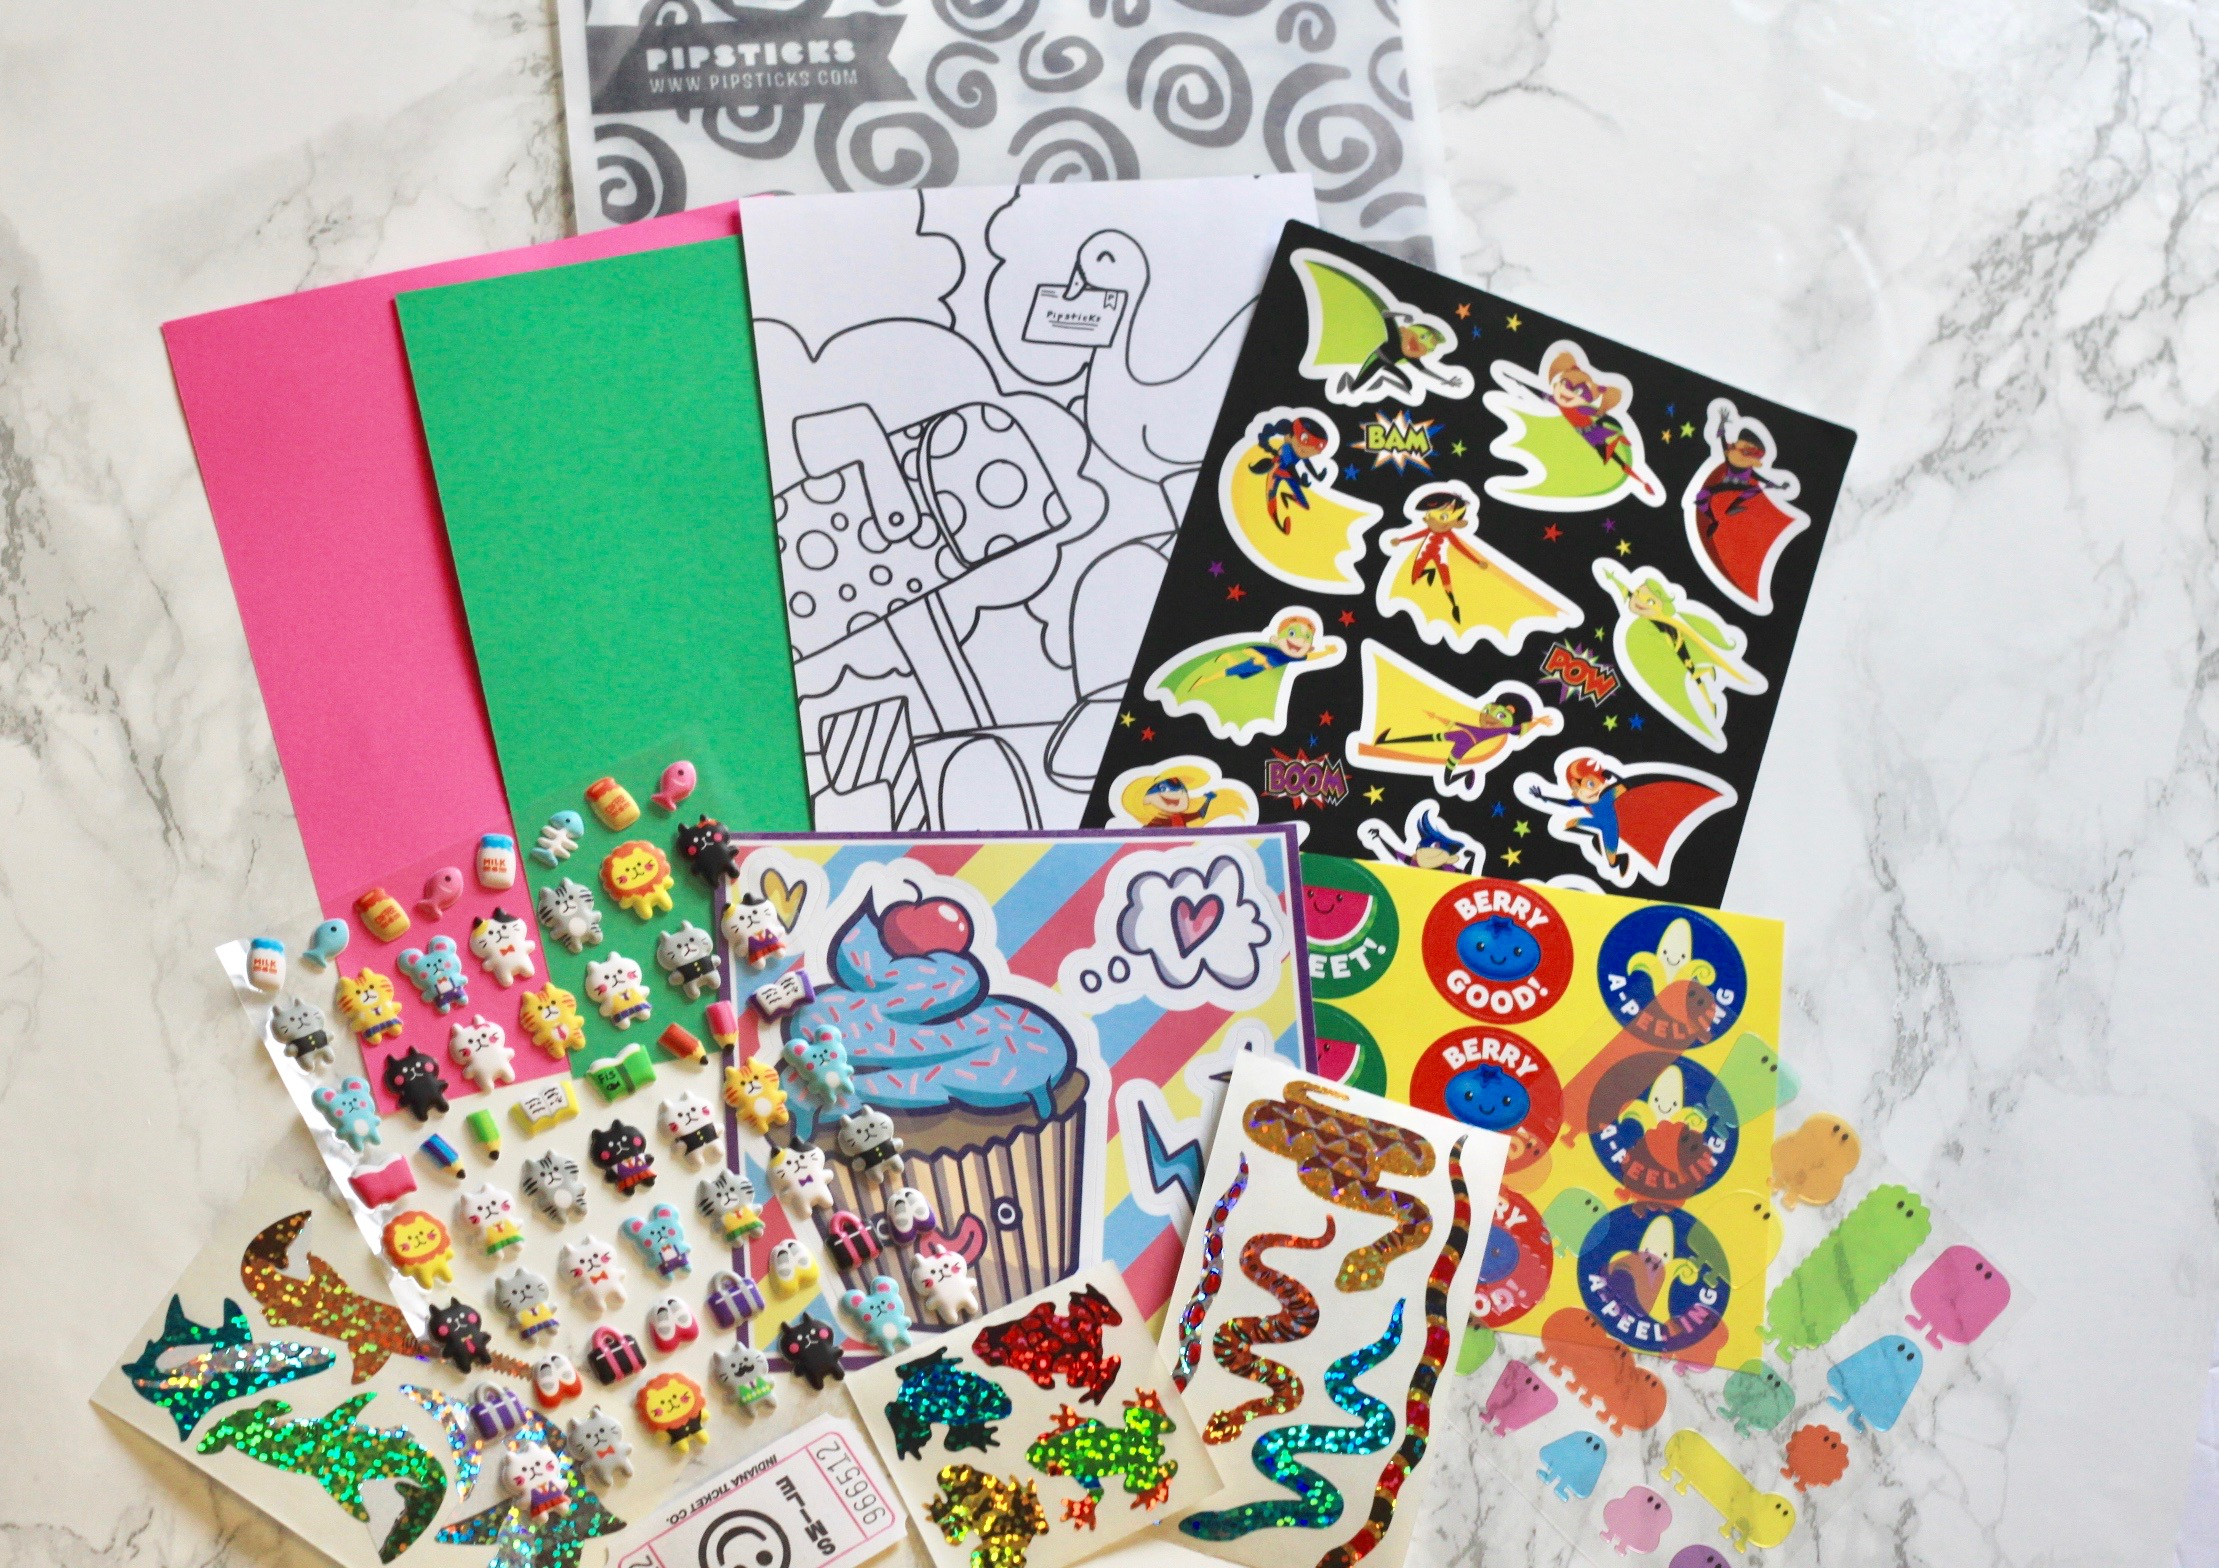 Pipsticks Kids Sticker Subscription Review May 2017